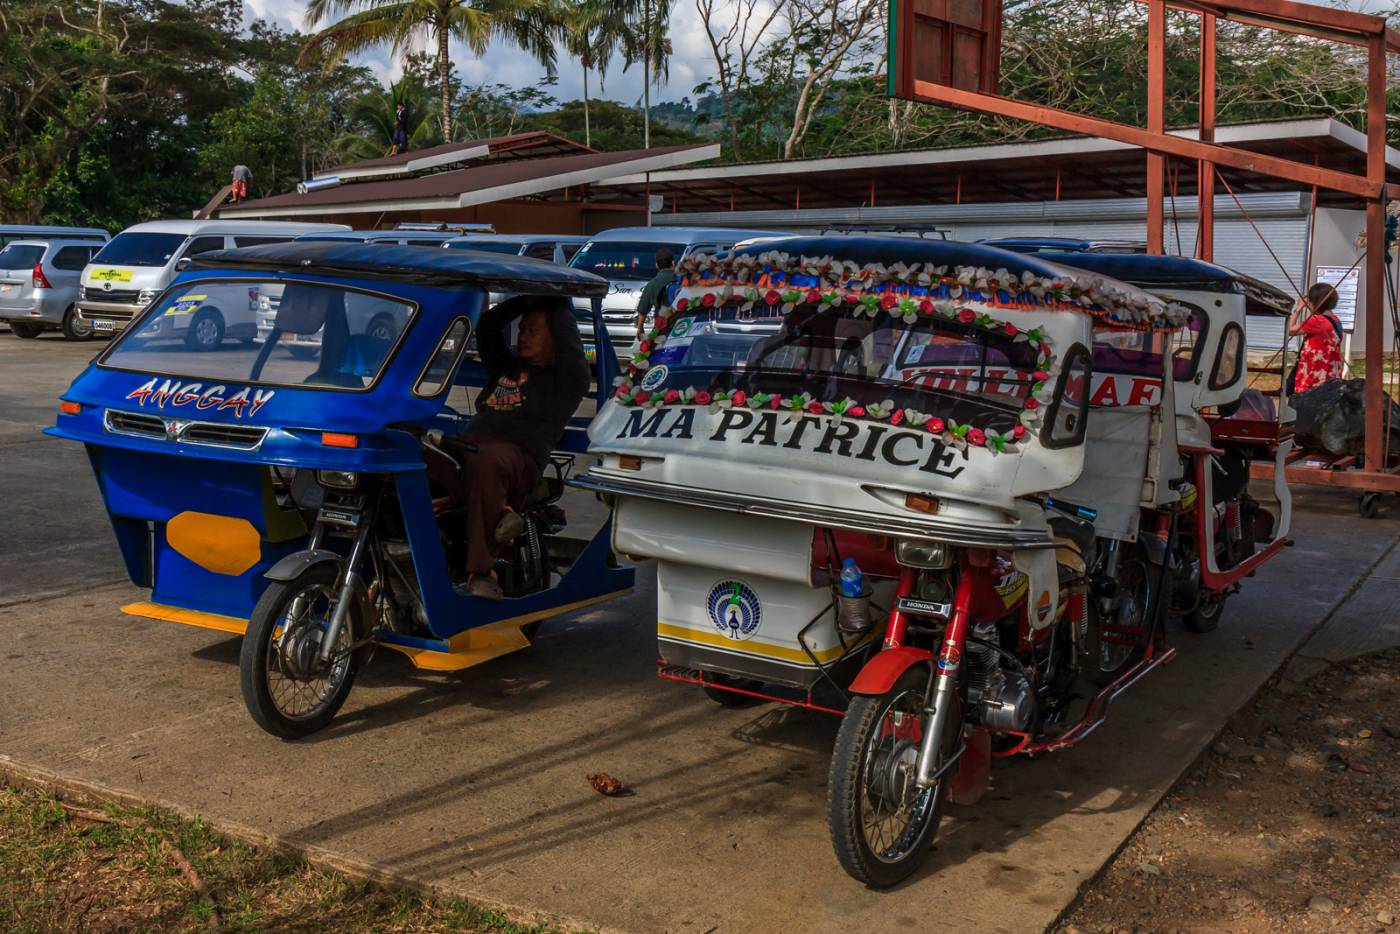 Palawan tricycles look like little cars.